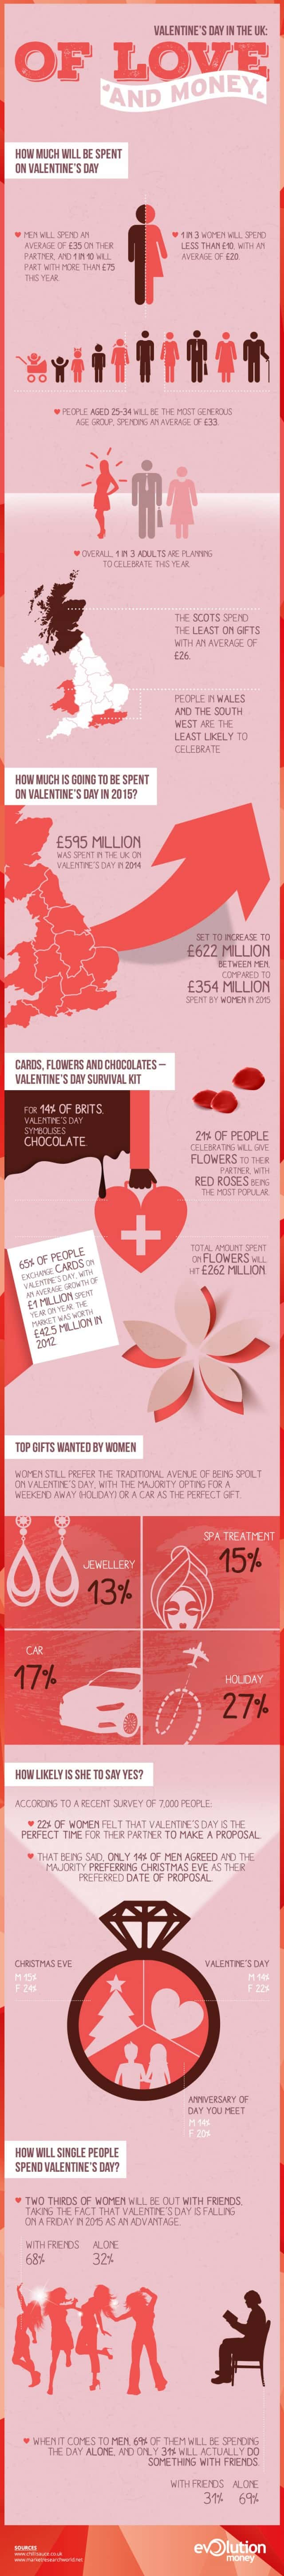 Real Cost of Valentine's Day analyzed